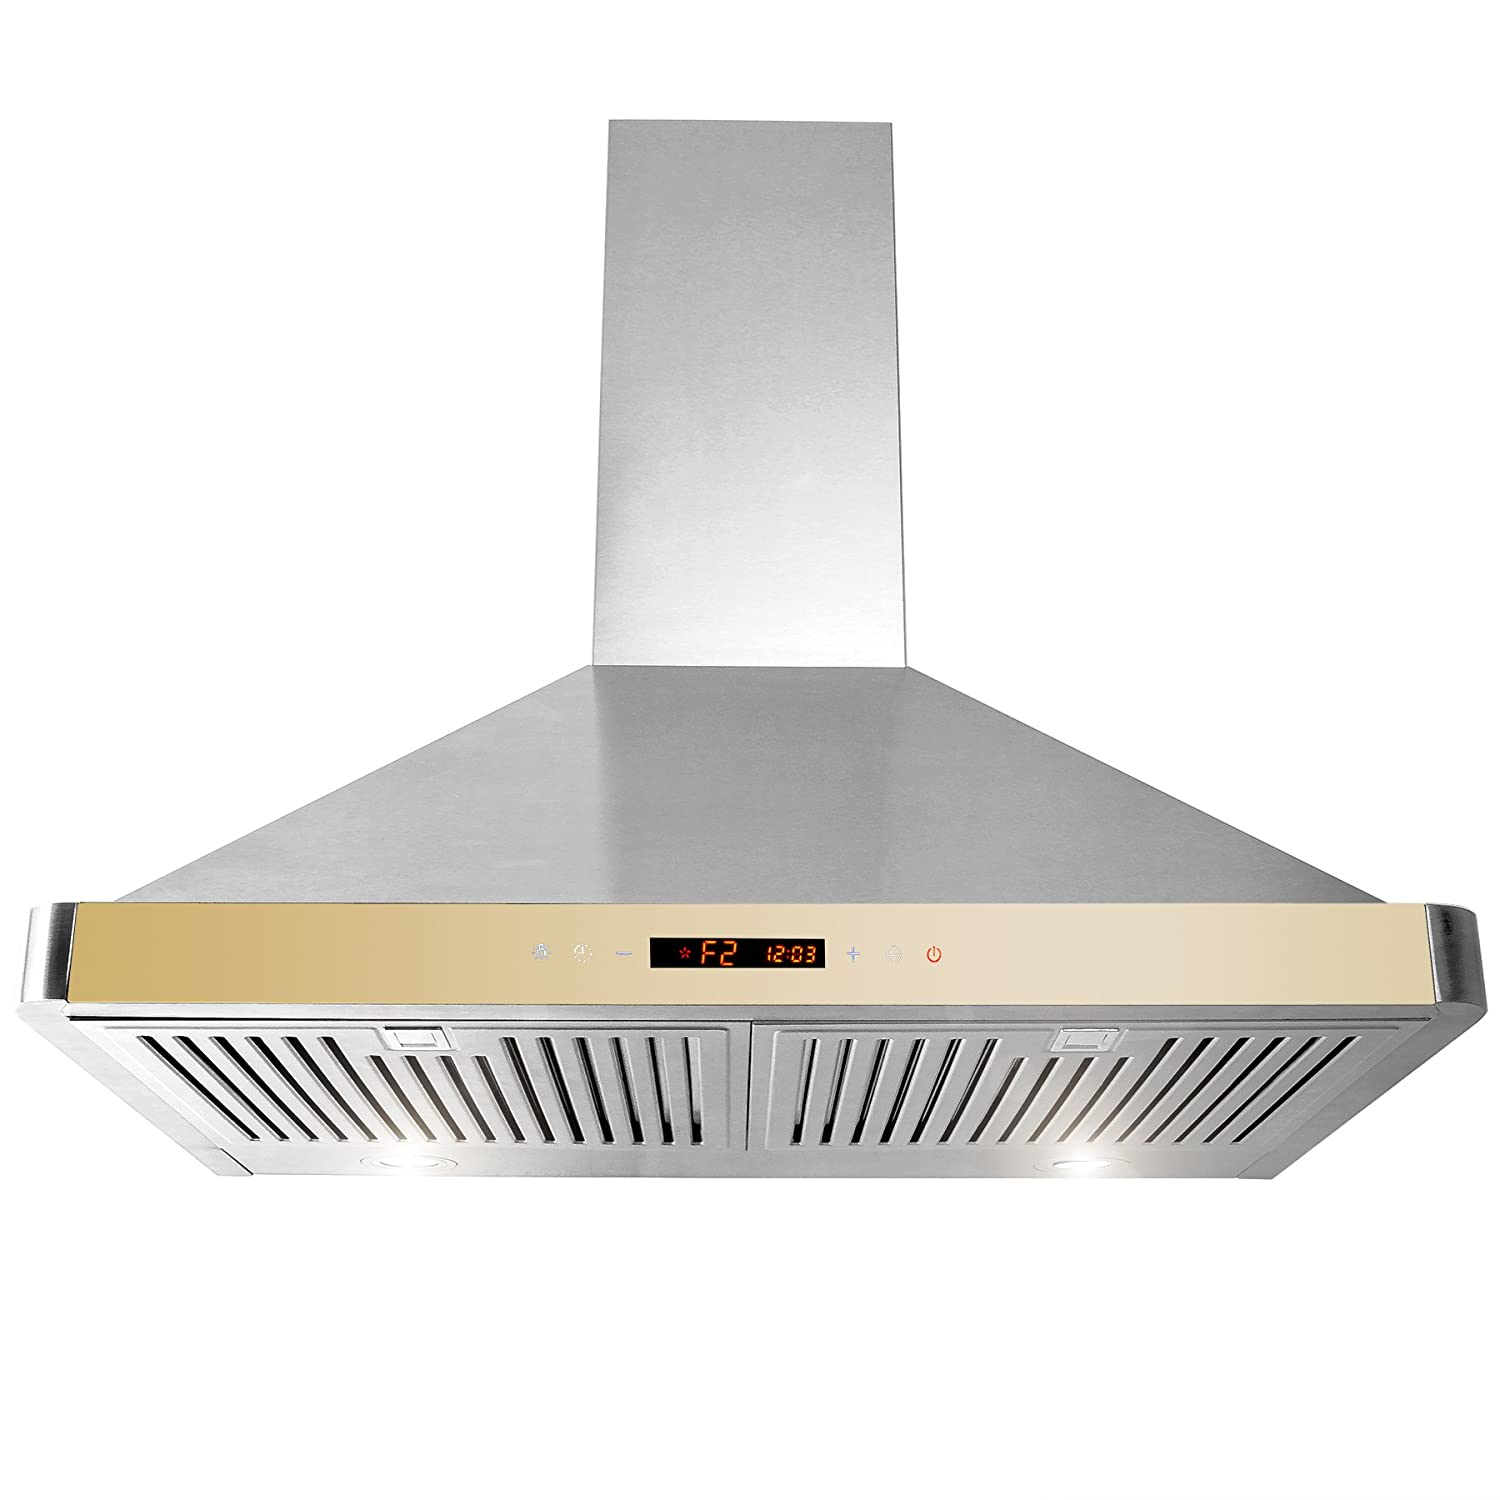 "Golden Vantage 30"" Wall Mount Range Hood GV-63175D-GLD Stainless Steel Golden Vent Hood W/ Touch Control Panel"